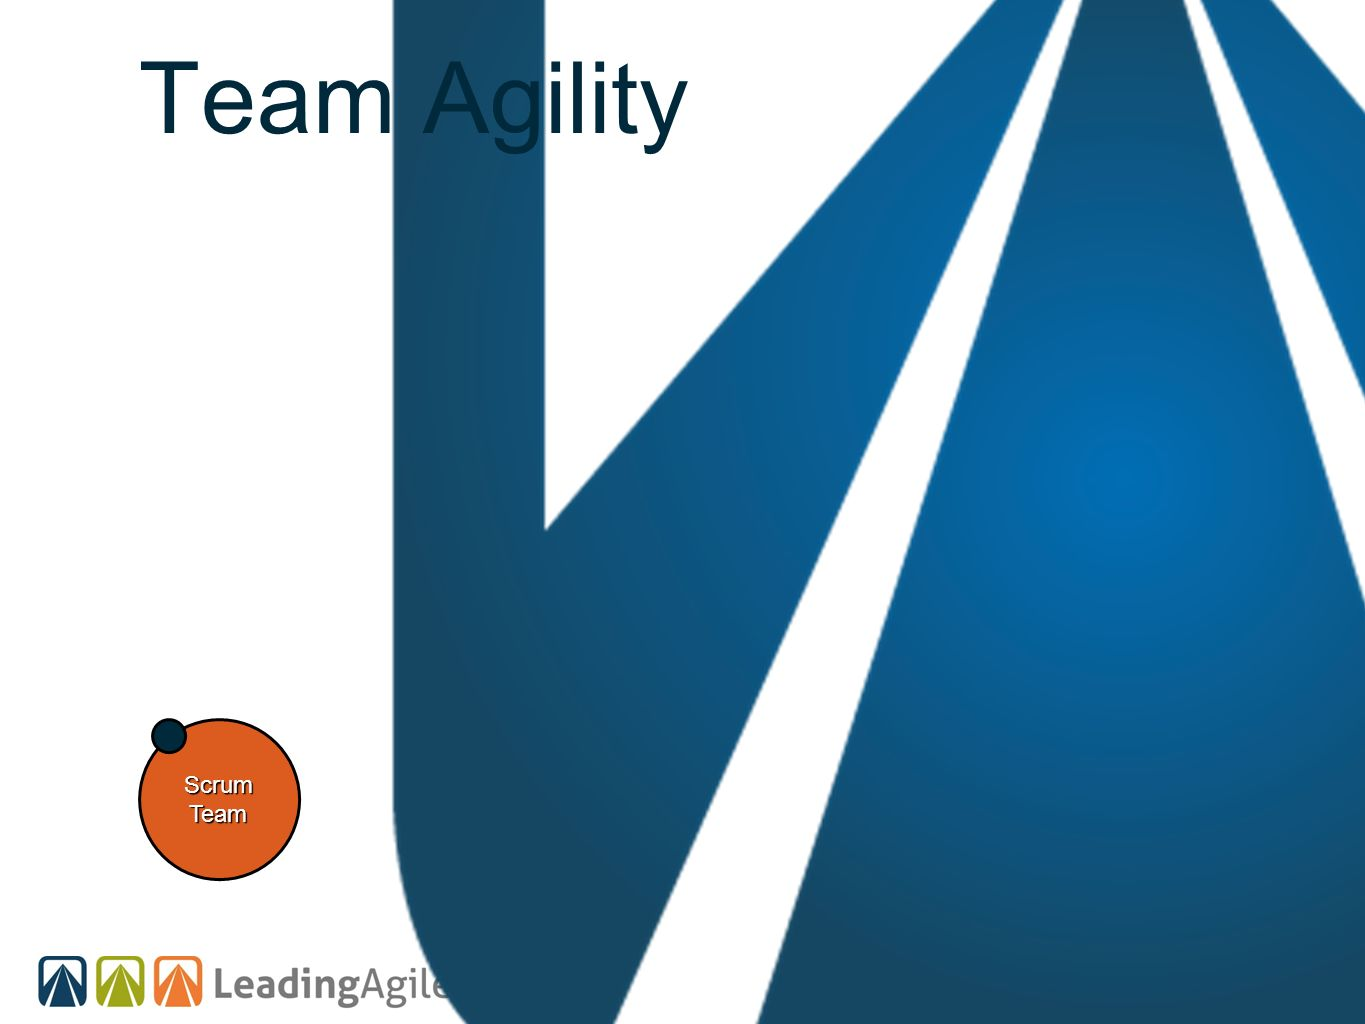 Team Agility Scrum Team